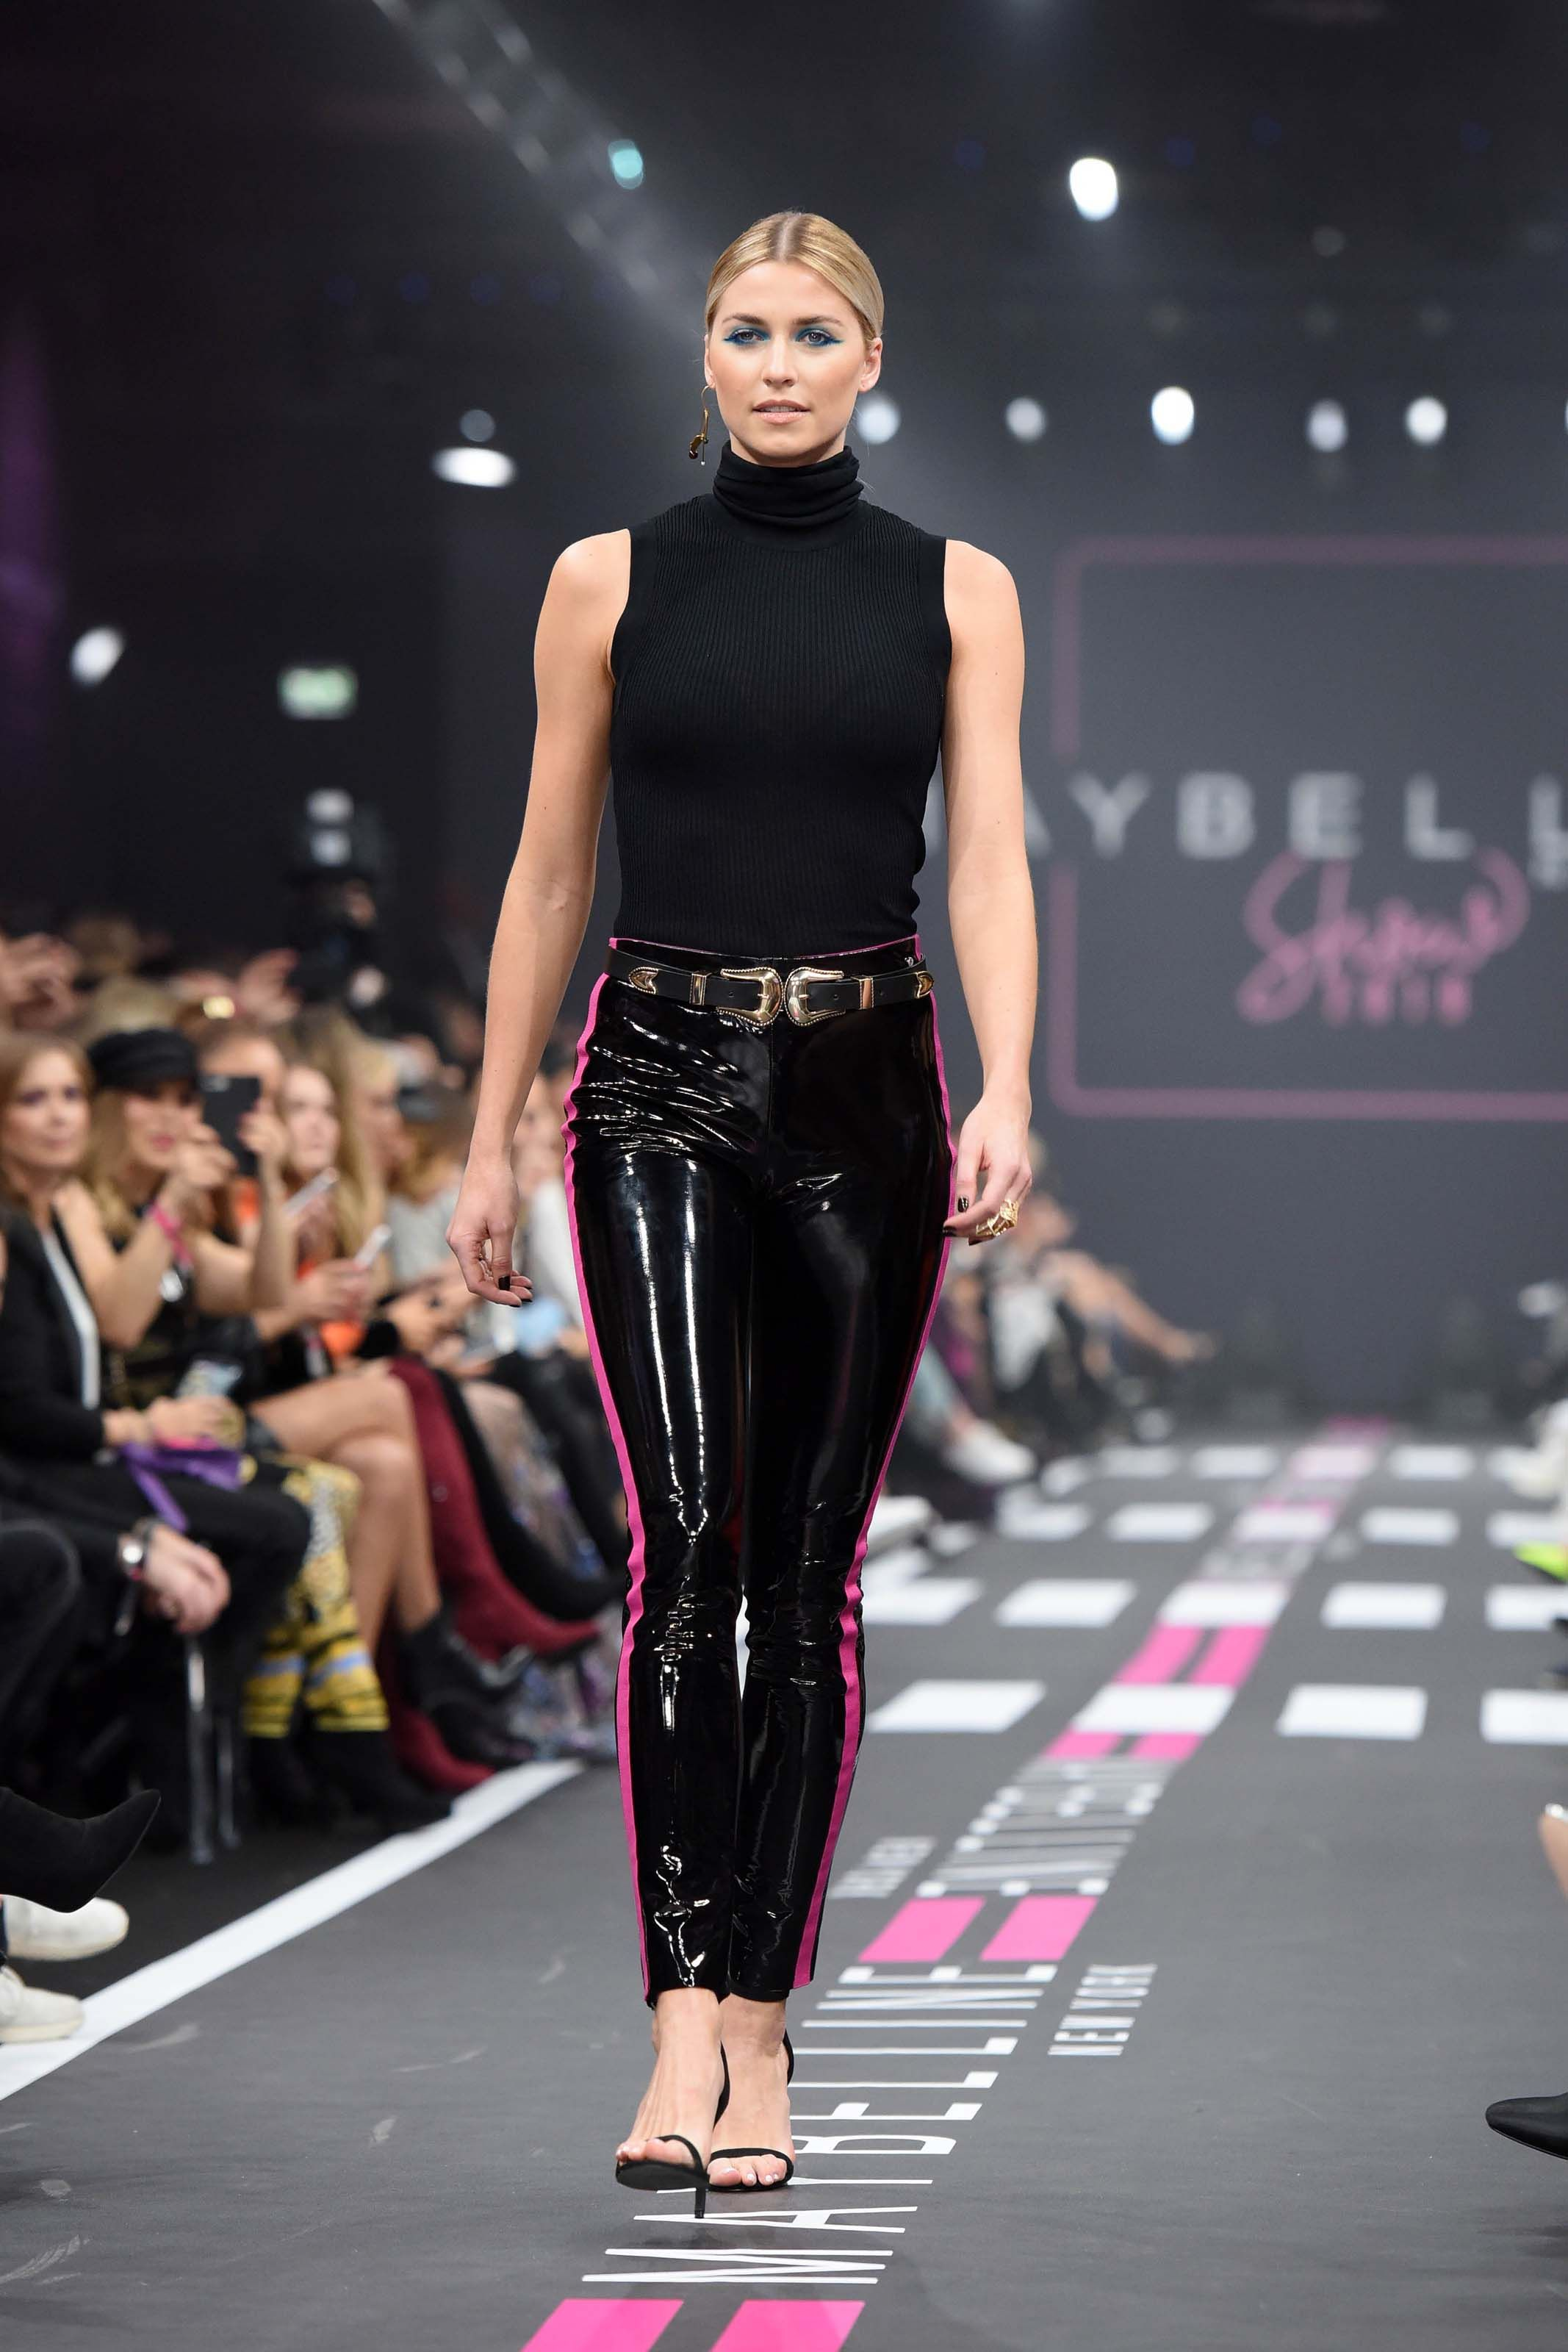 Lena Gercke Attends Maybelline Show Vinyl Clothing